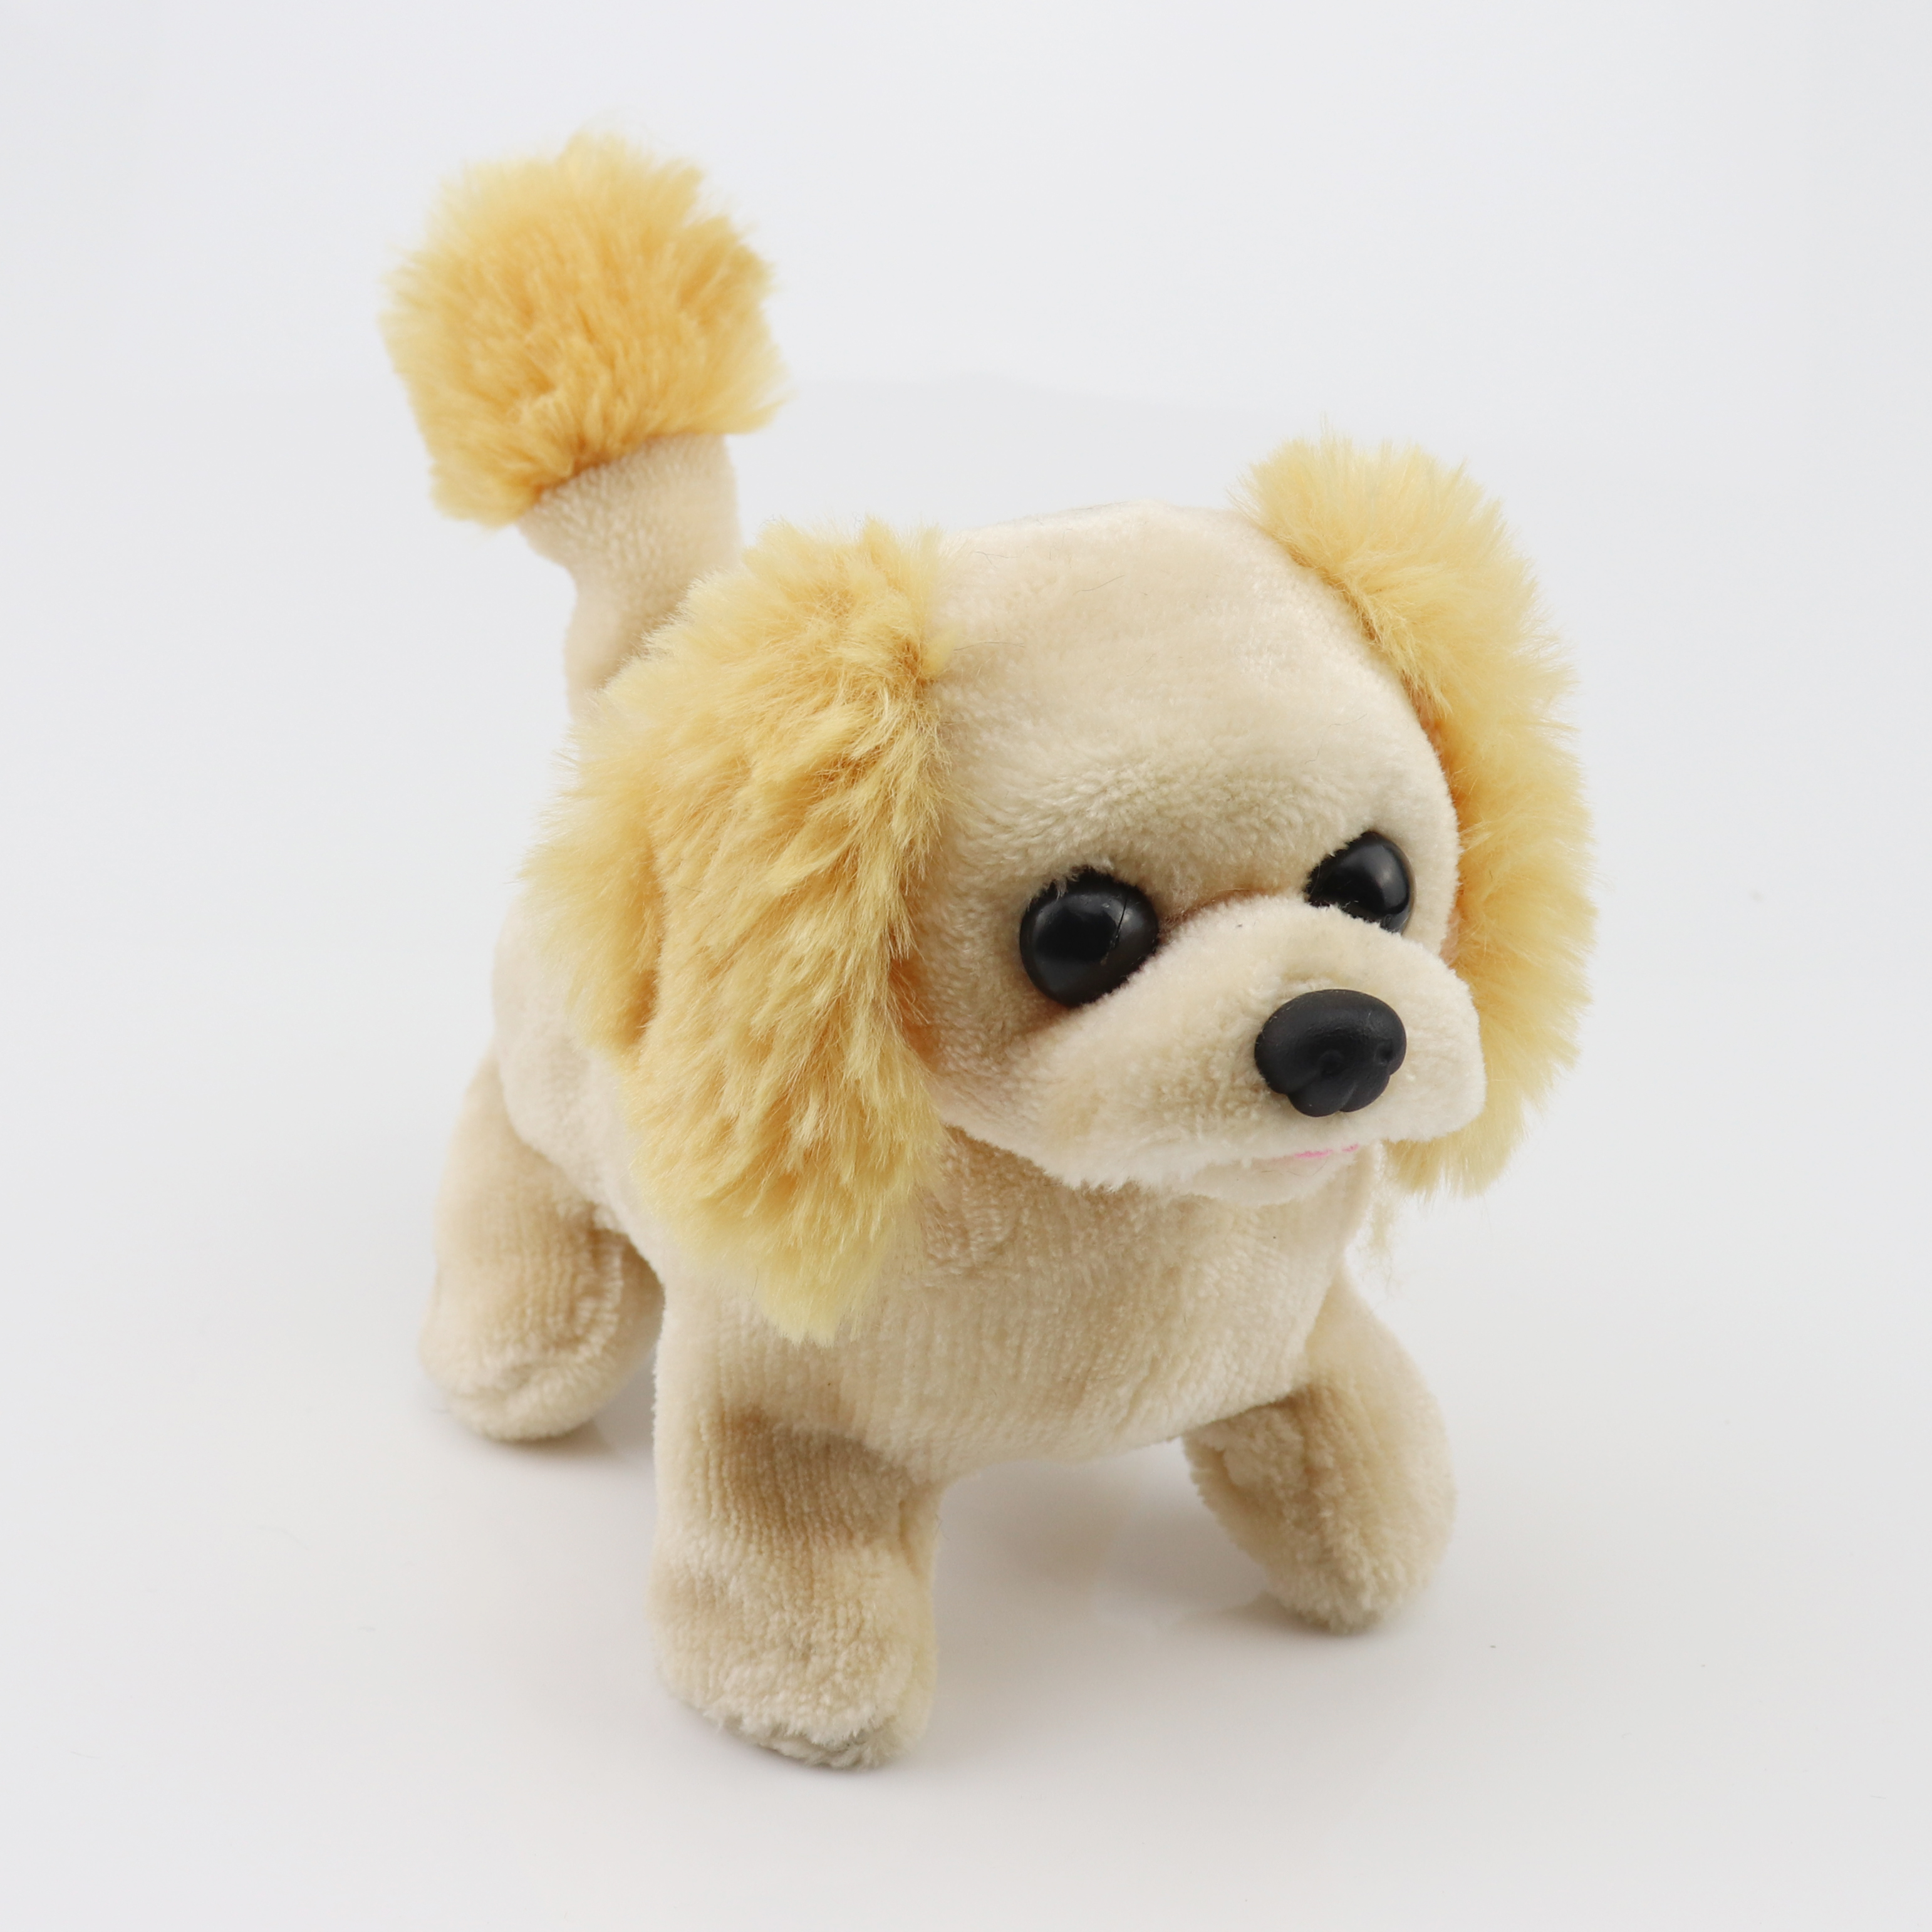 SENJOHN stuffed <strong>animal</strong> walking bouncing dog motion activated plush toy